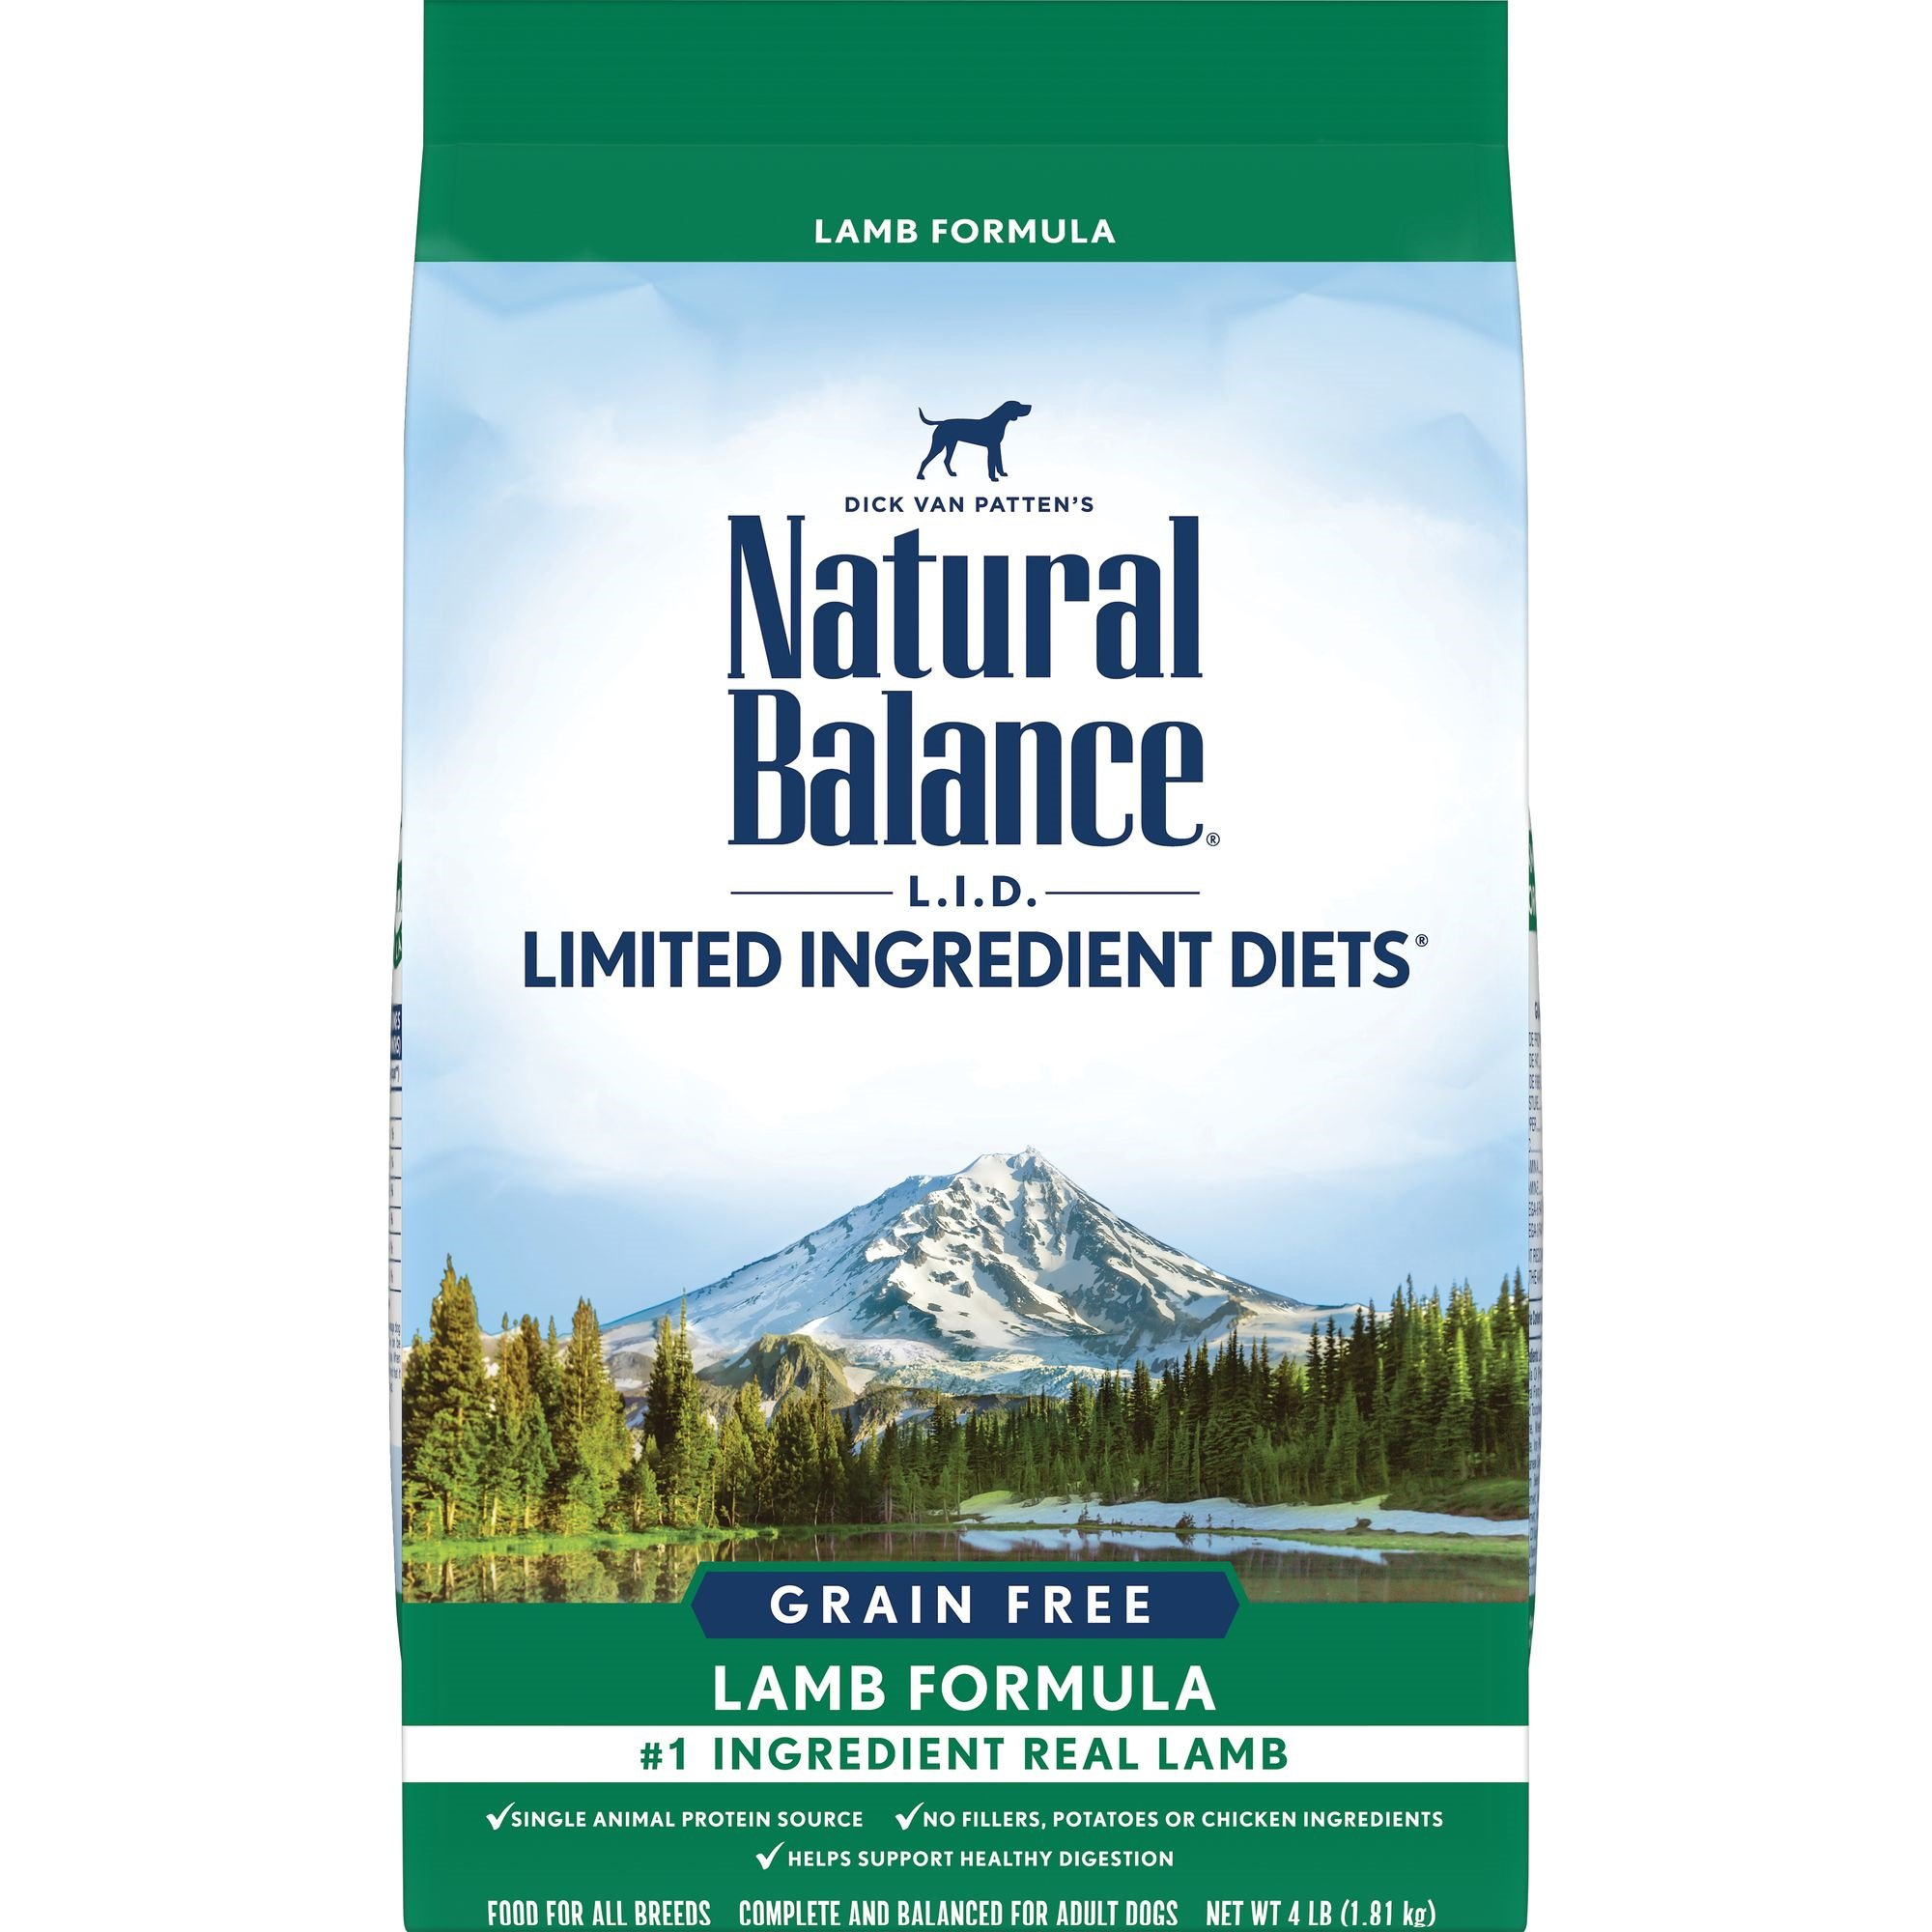 Natural Balance L.I.D. Limited Ingredient Diets Lamb Formula Dry Dog Food, 4 lbs.